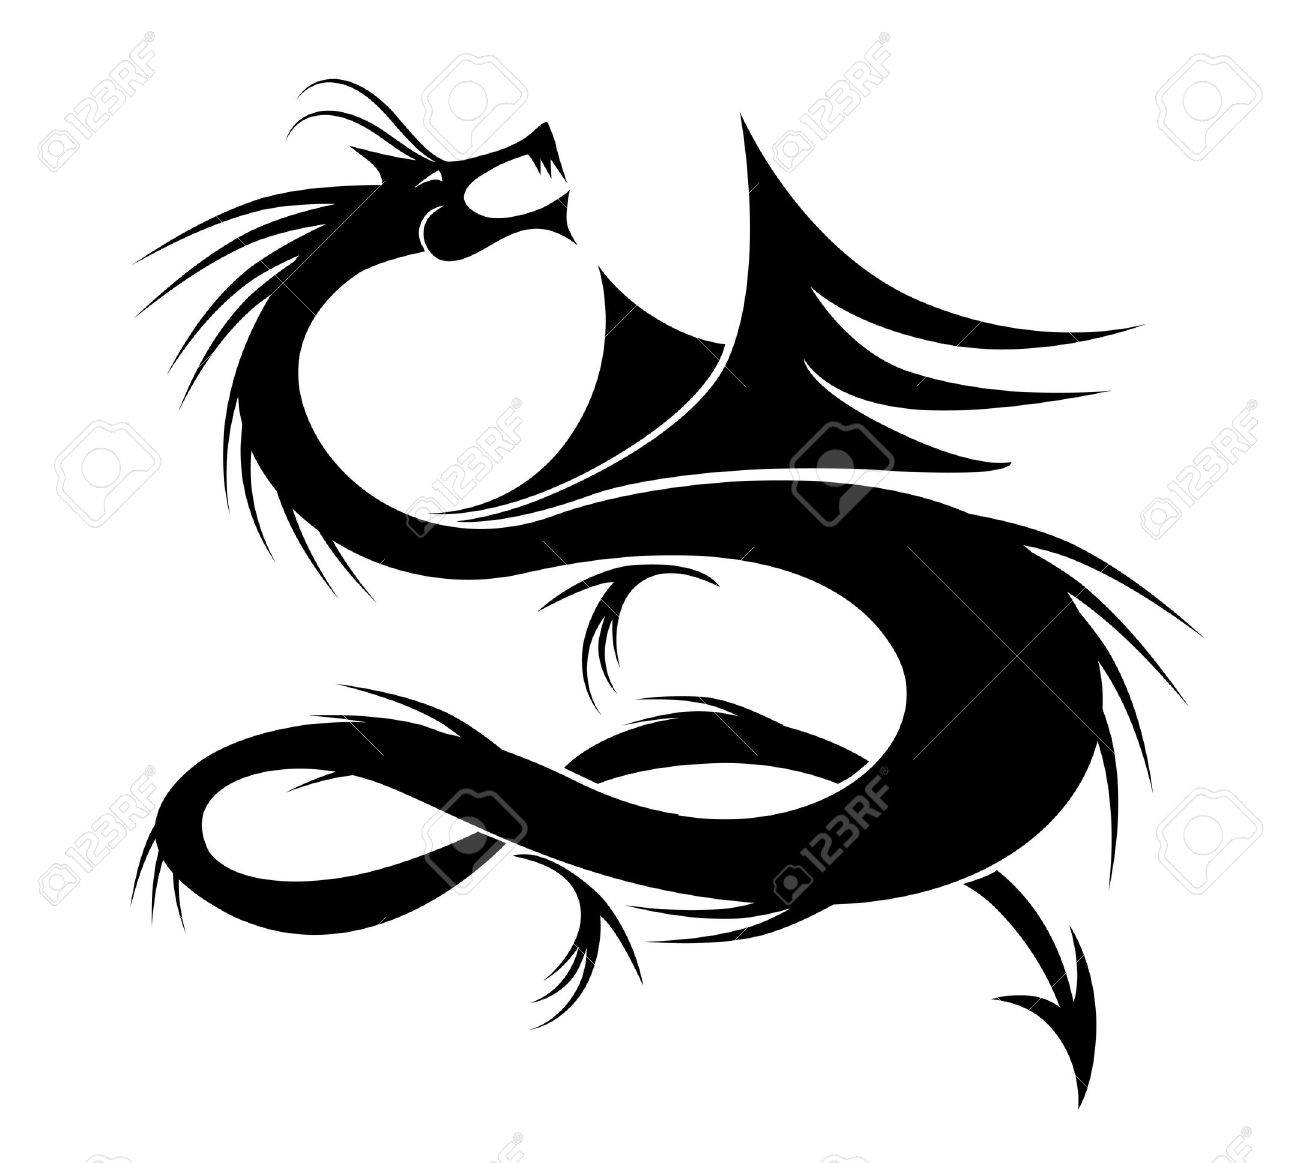 Dragon tattoo vector illustration for your design Stock Vector - 10723947